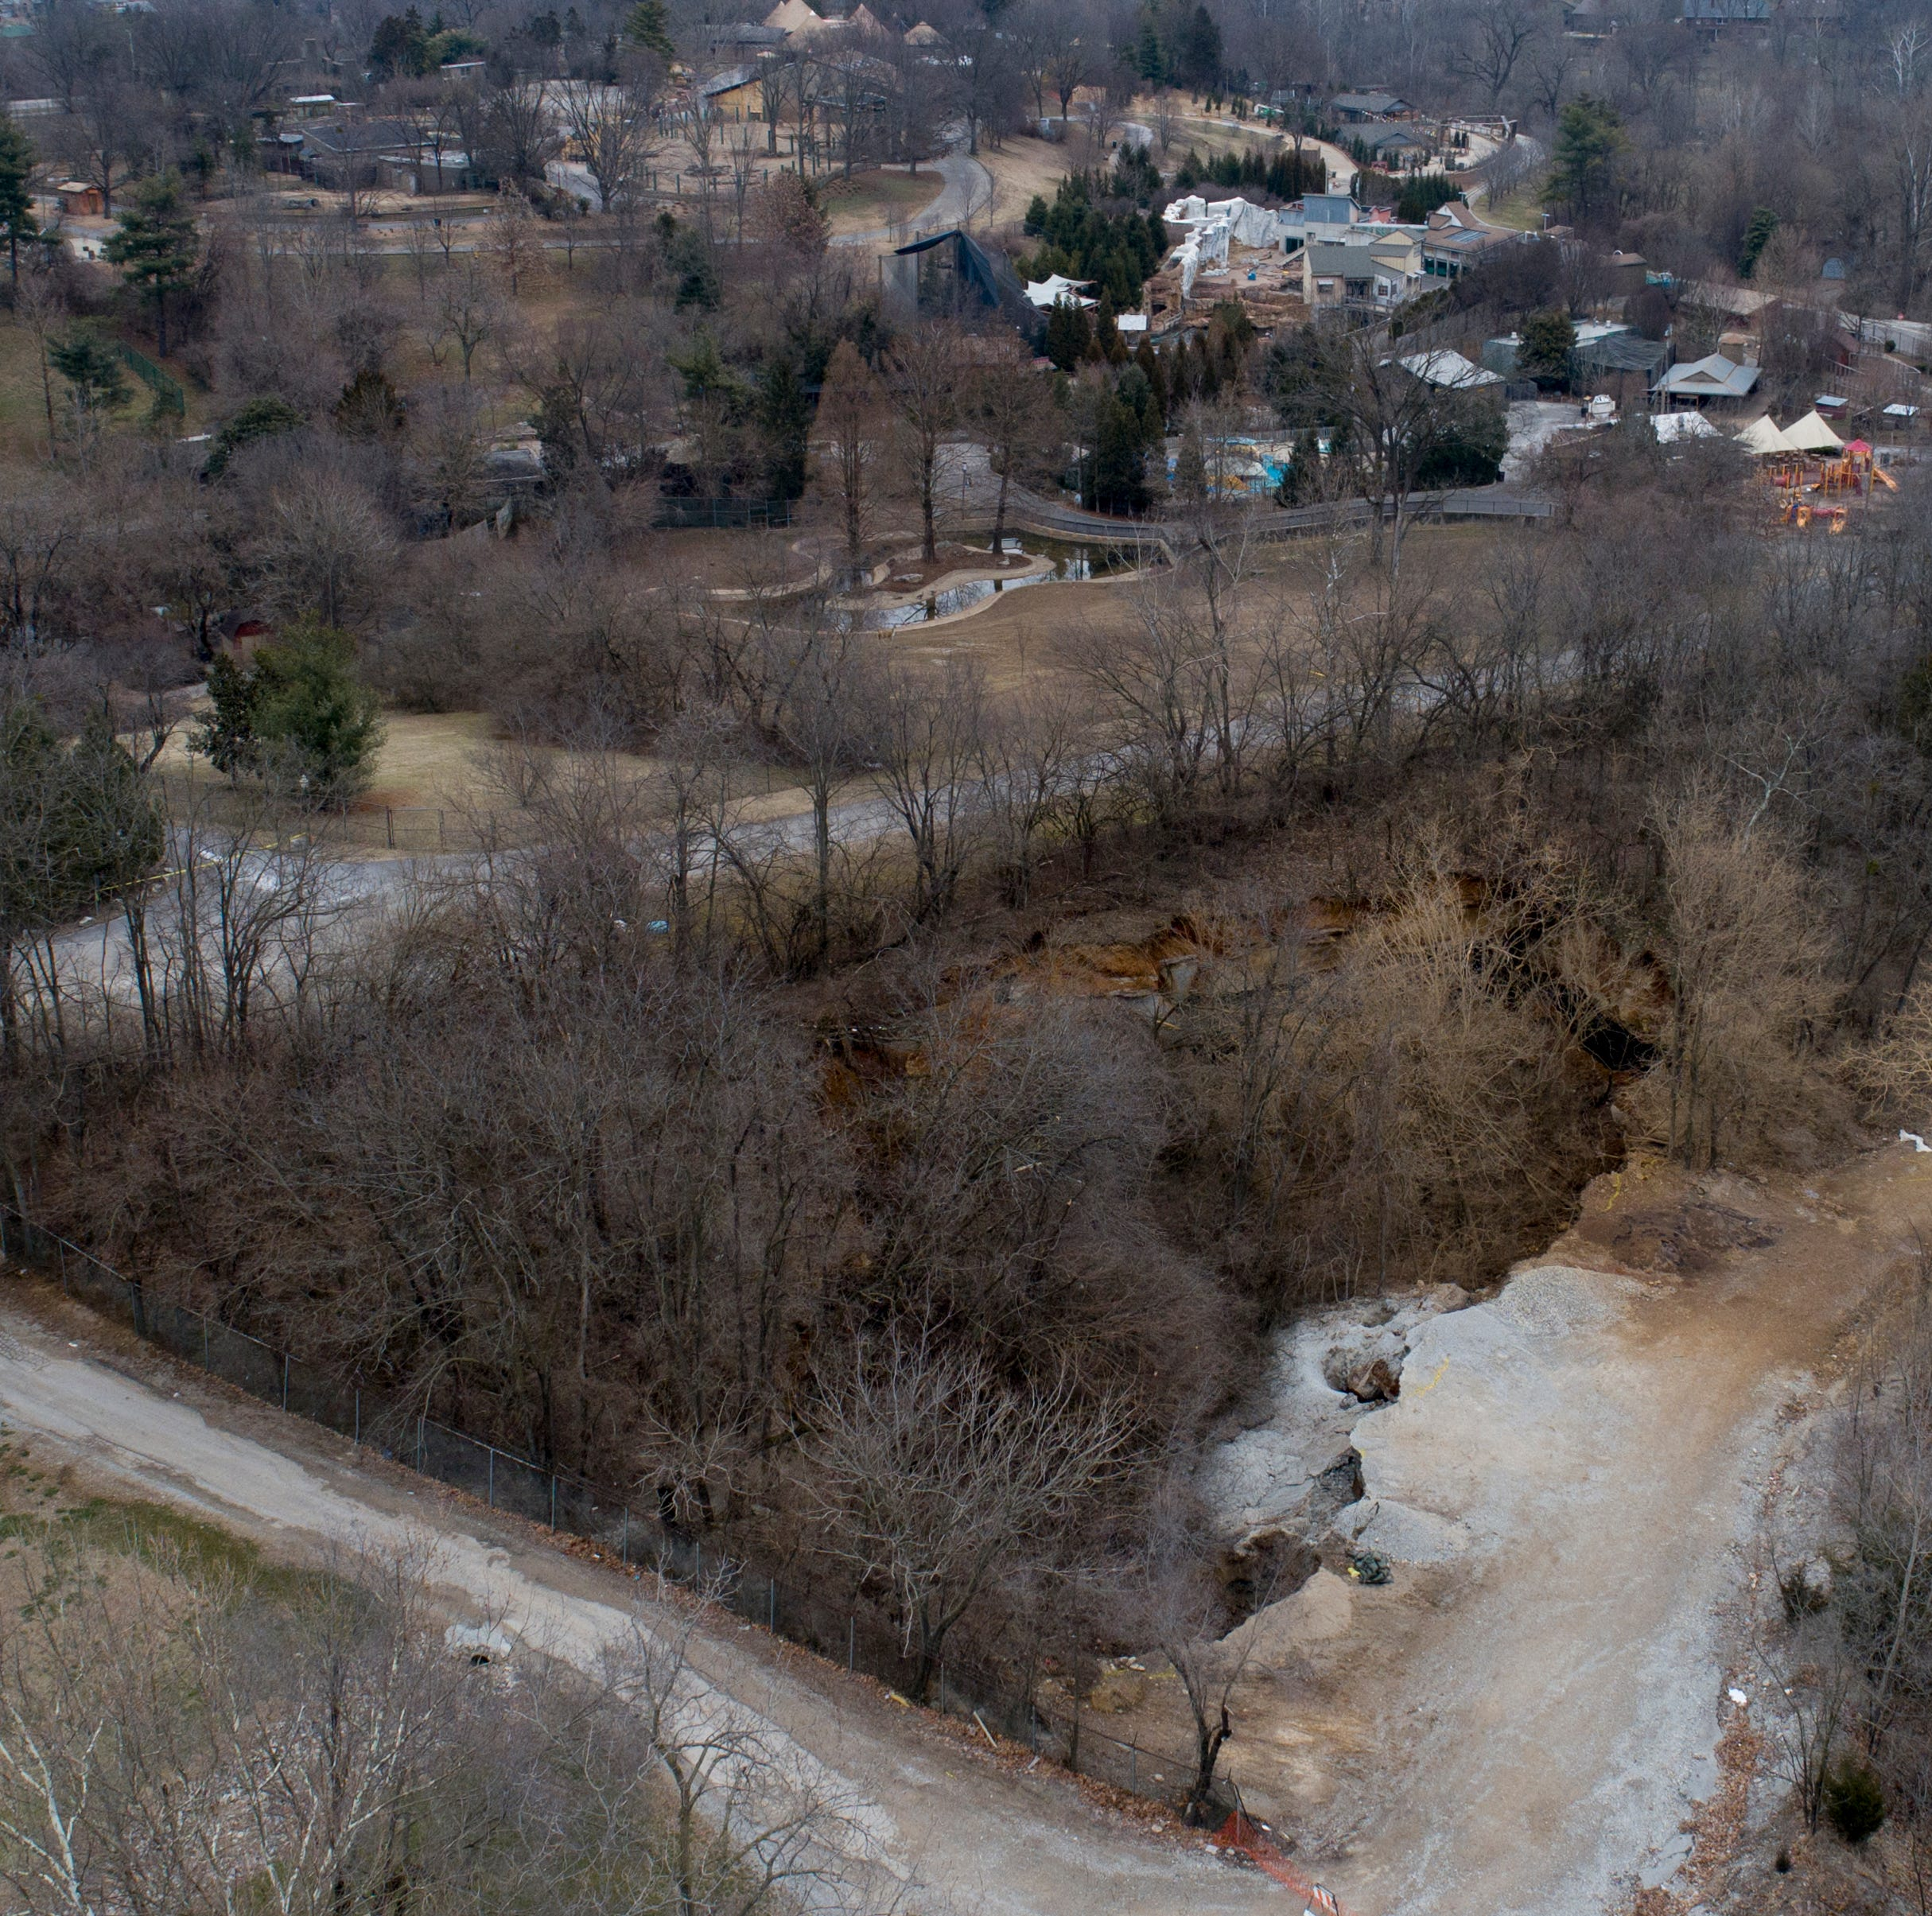 Sinkholes may be common, but the Louisville Zoo's crater is unusual